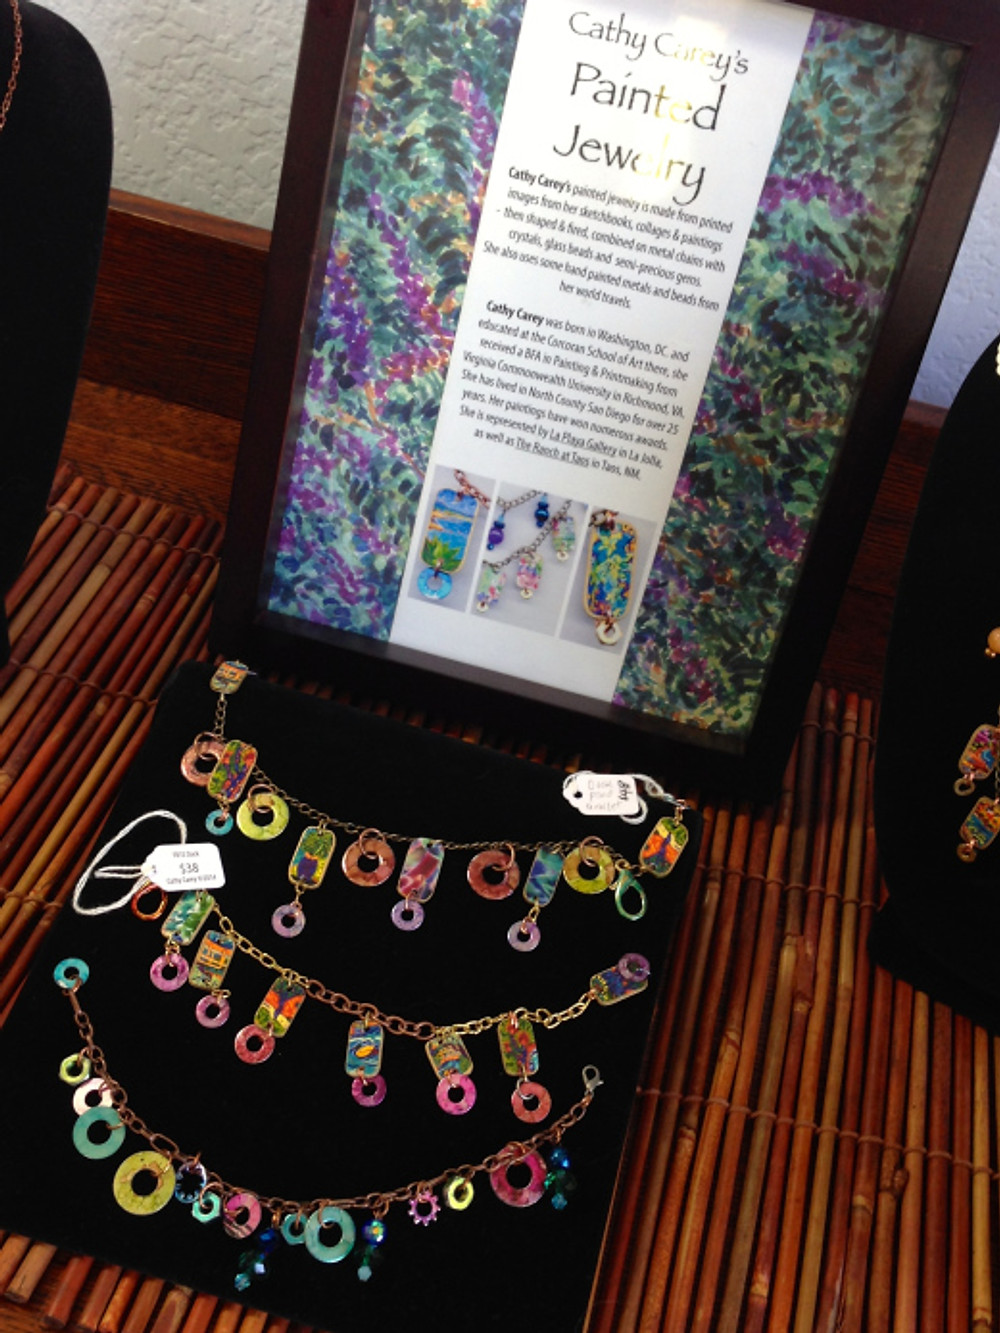 Painted Jewelry by Cathy Carey